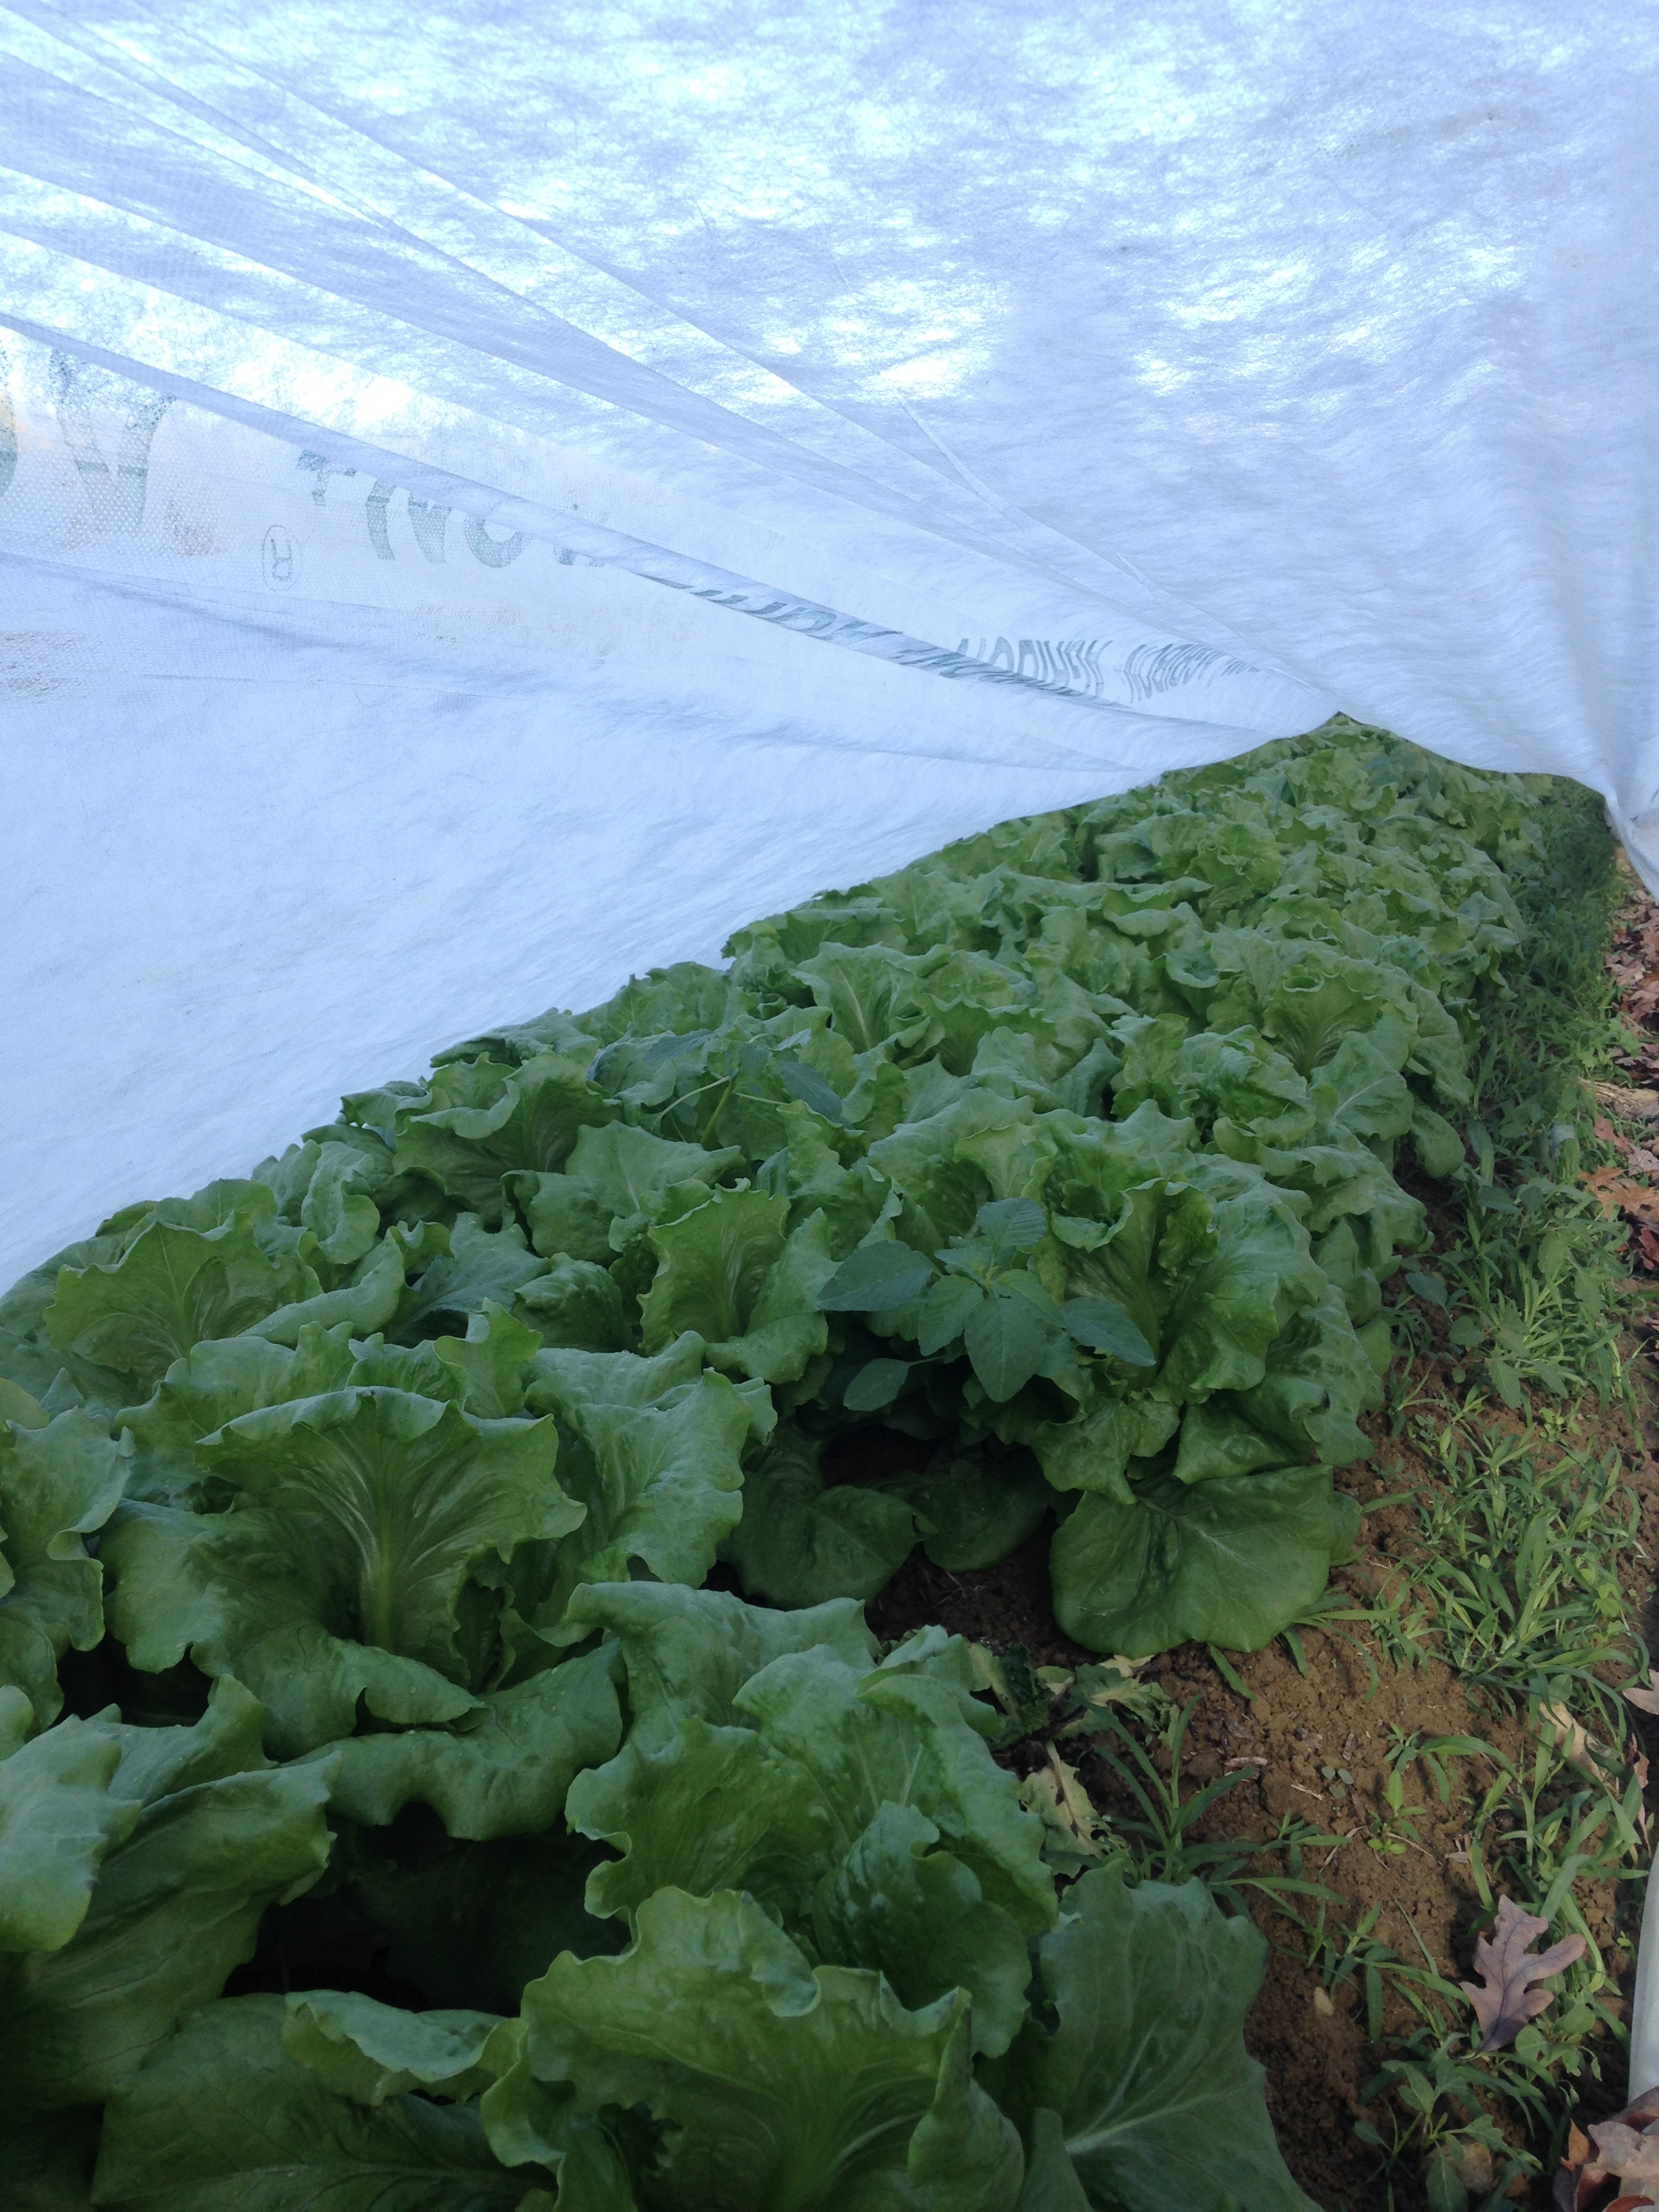 head lettuce! Looking good!